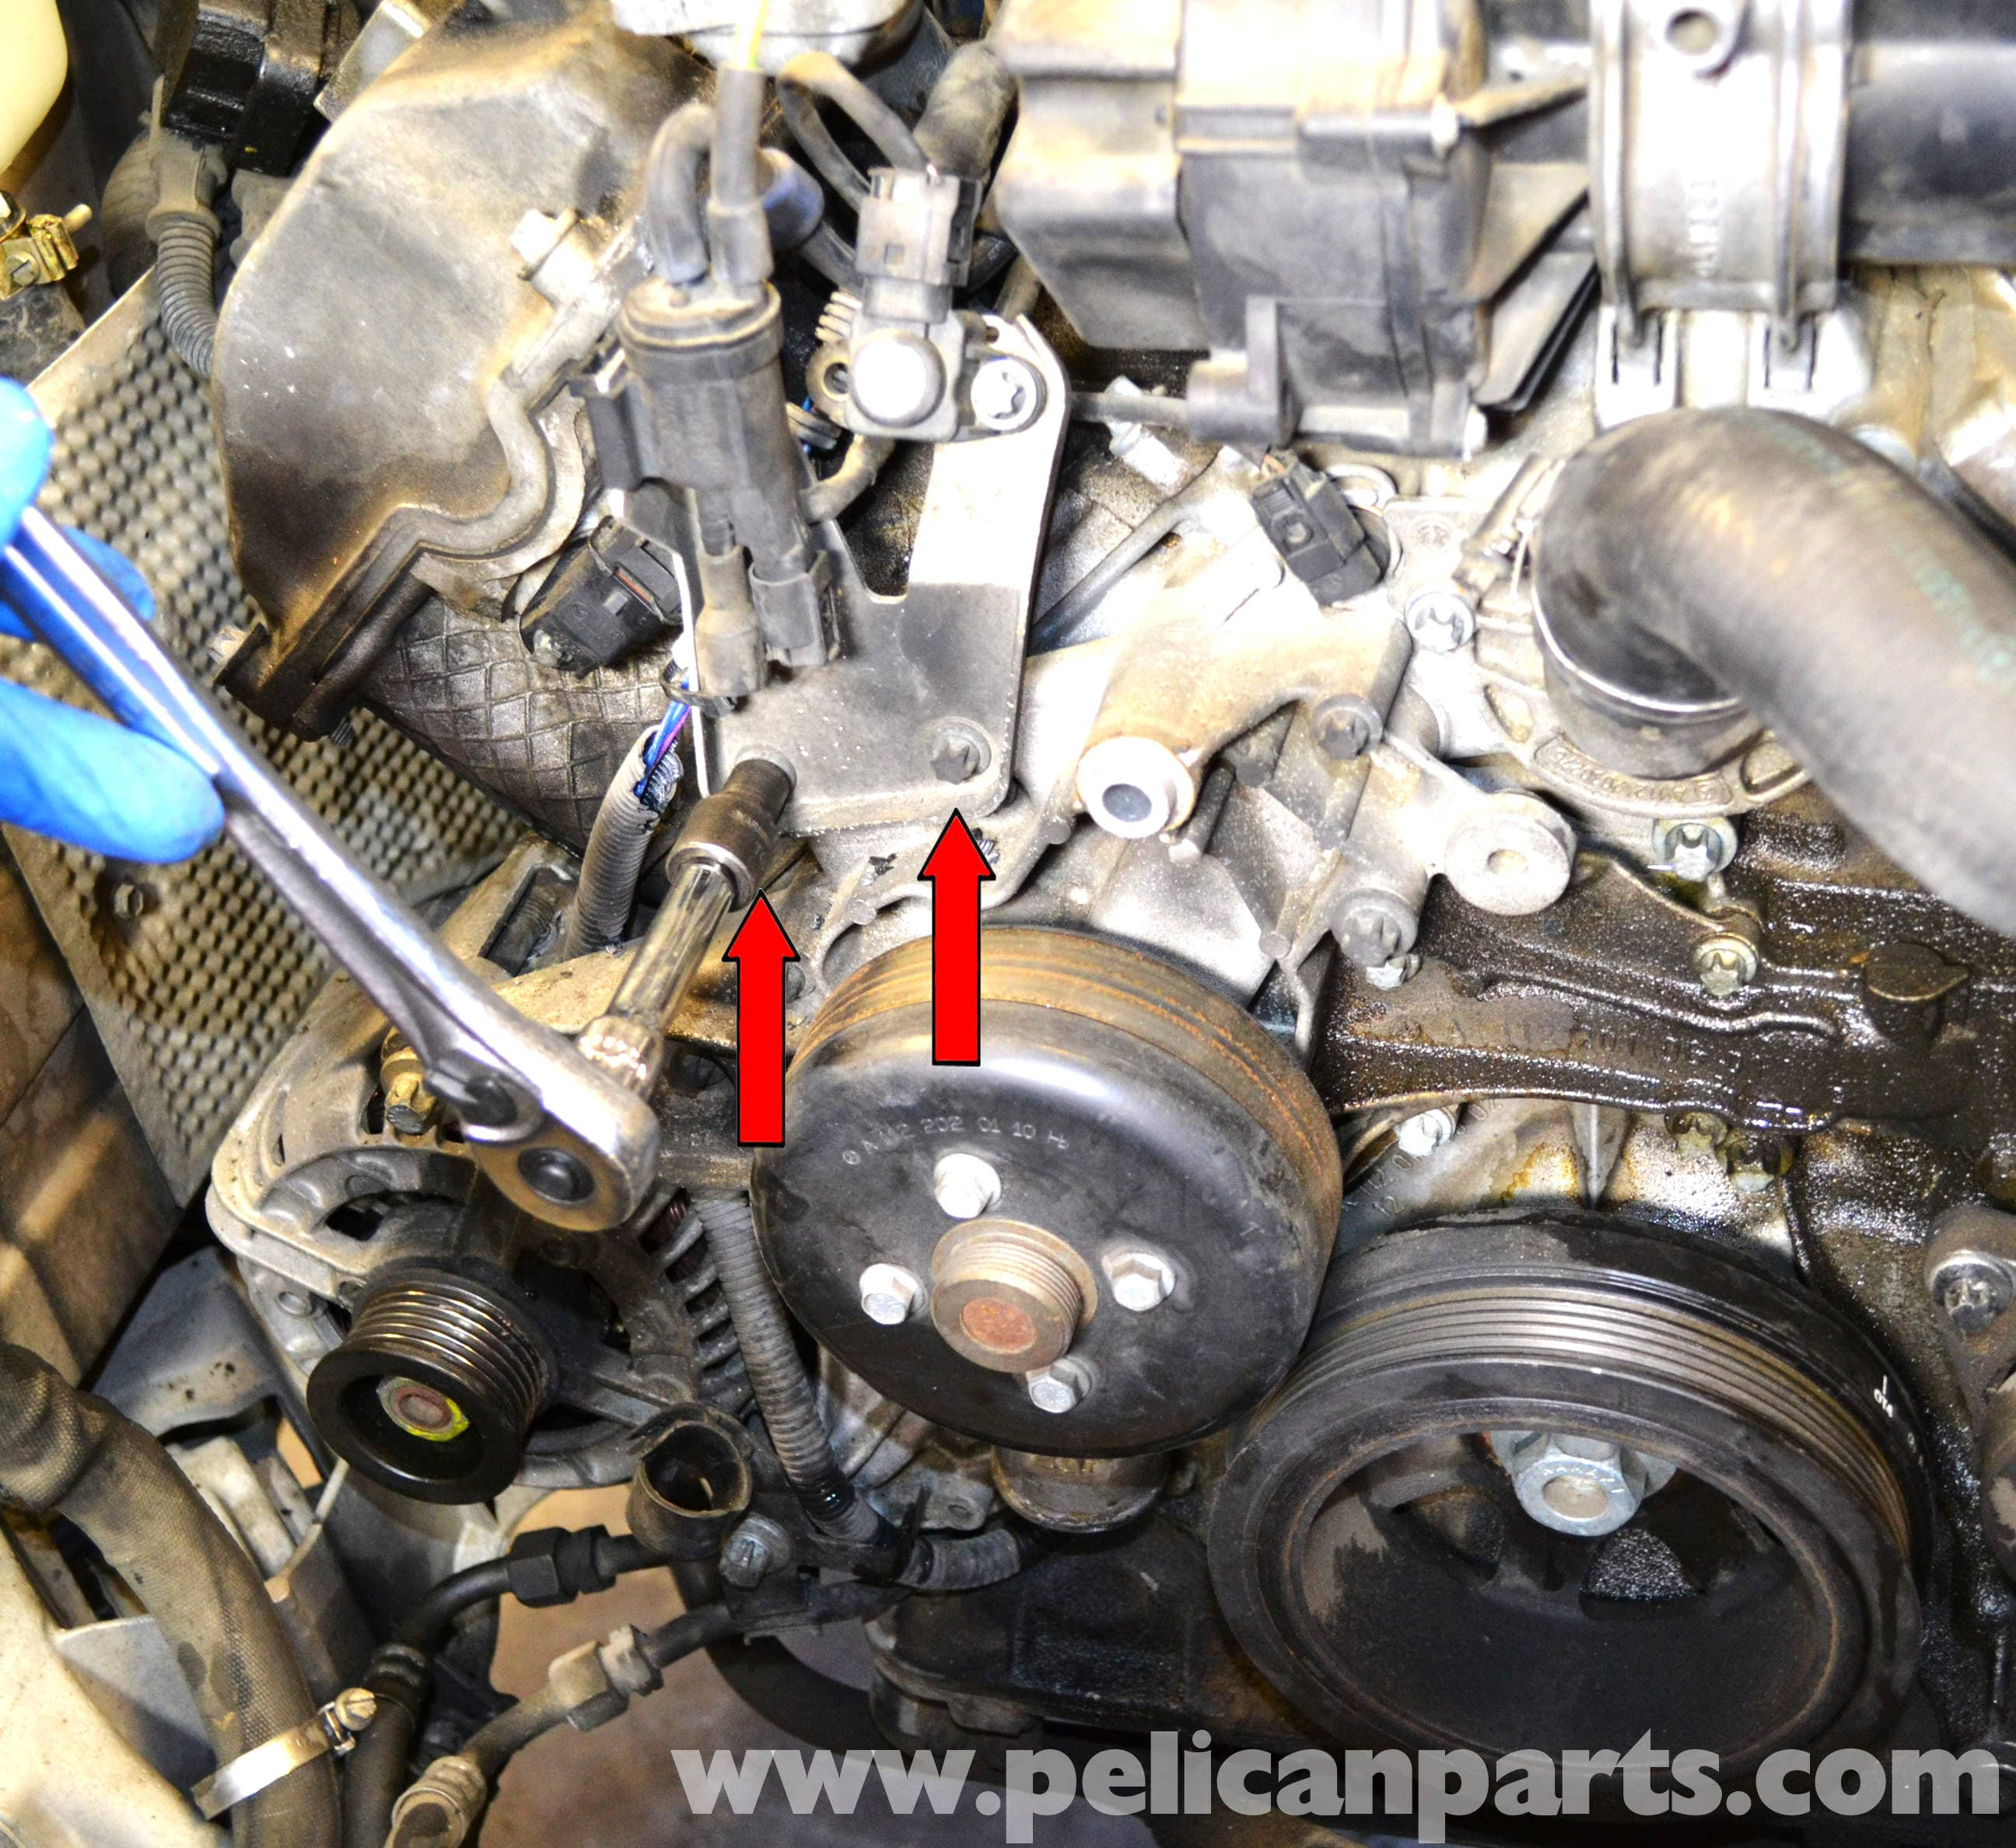 Mercedes benz w203 water pump replacement 2001 2007 for Mercedes benz coolant autozone